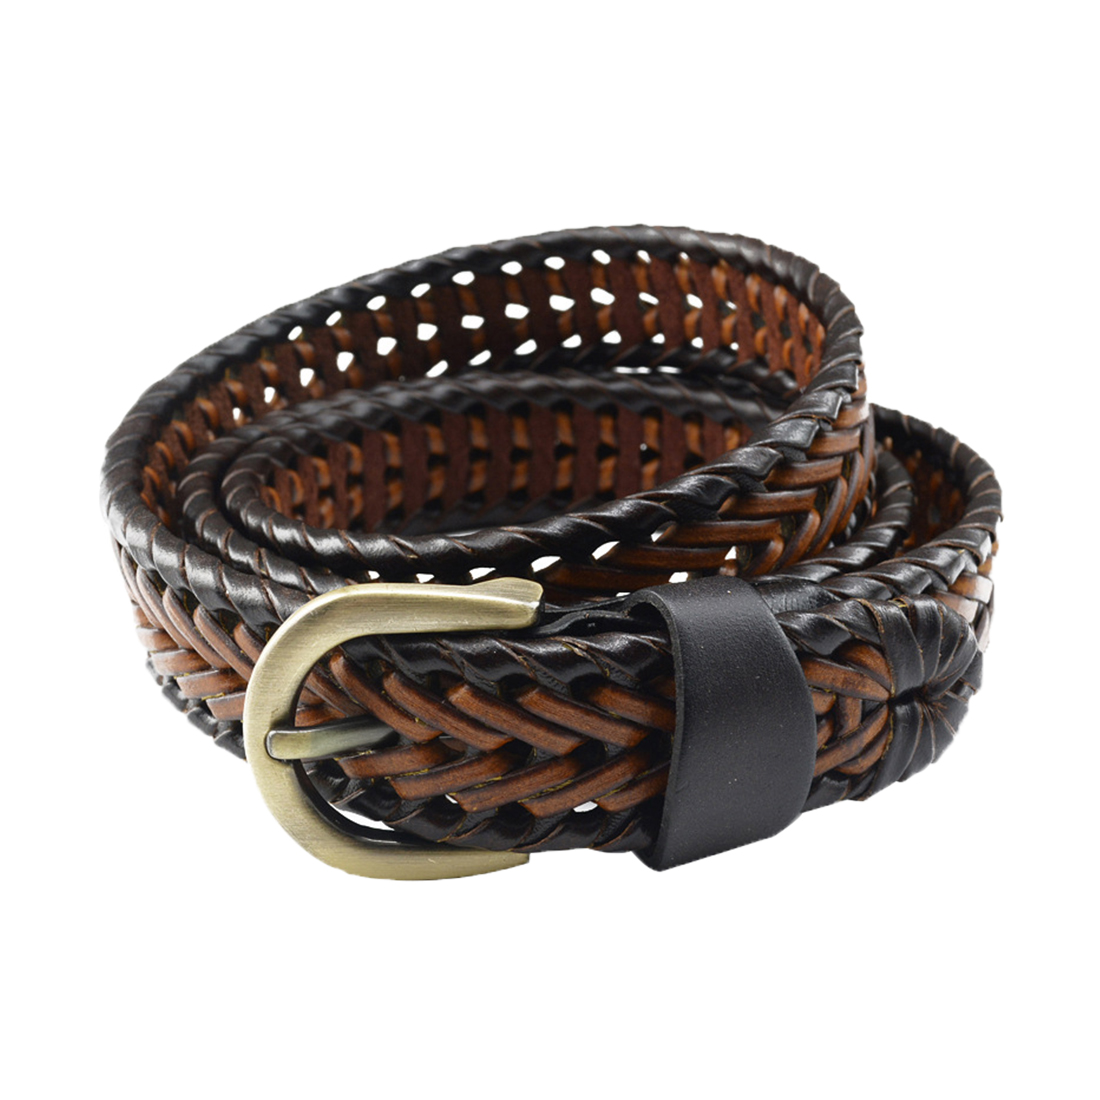 Unisex Braided Alloy Single Pin Buckle Imitation Leather Belt Brown